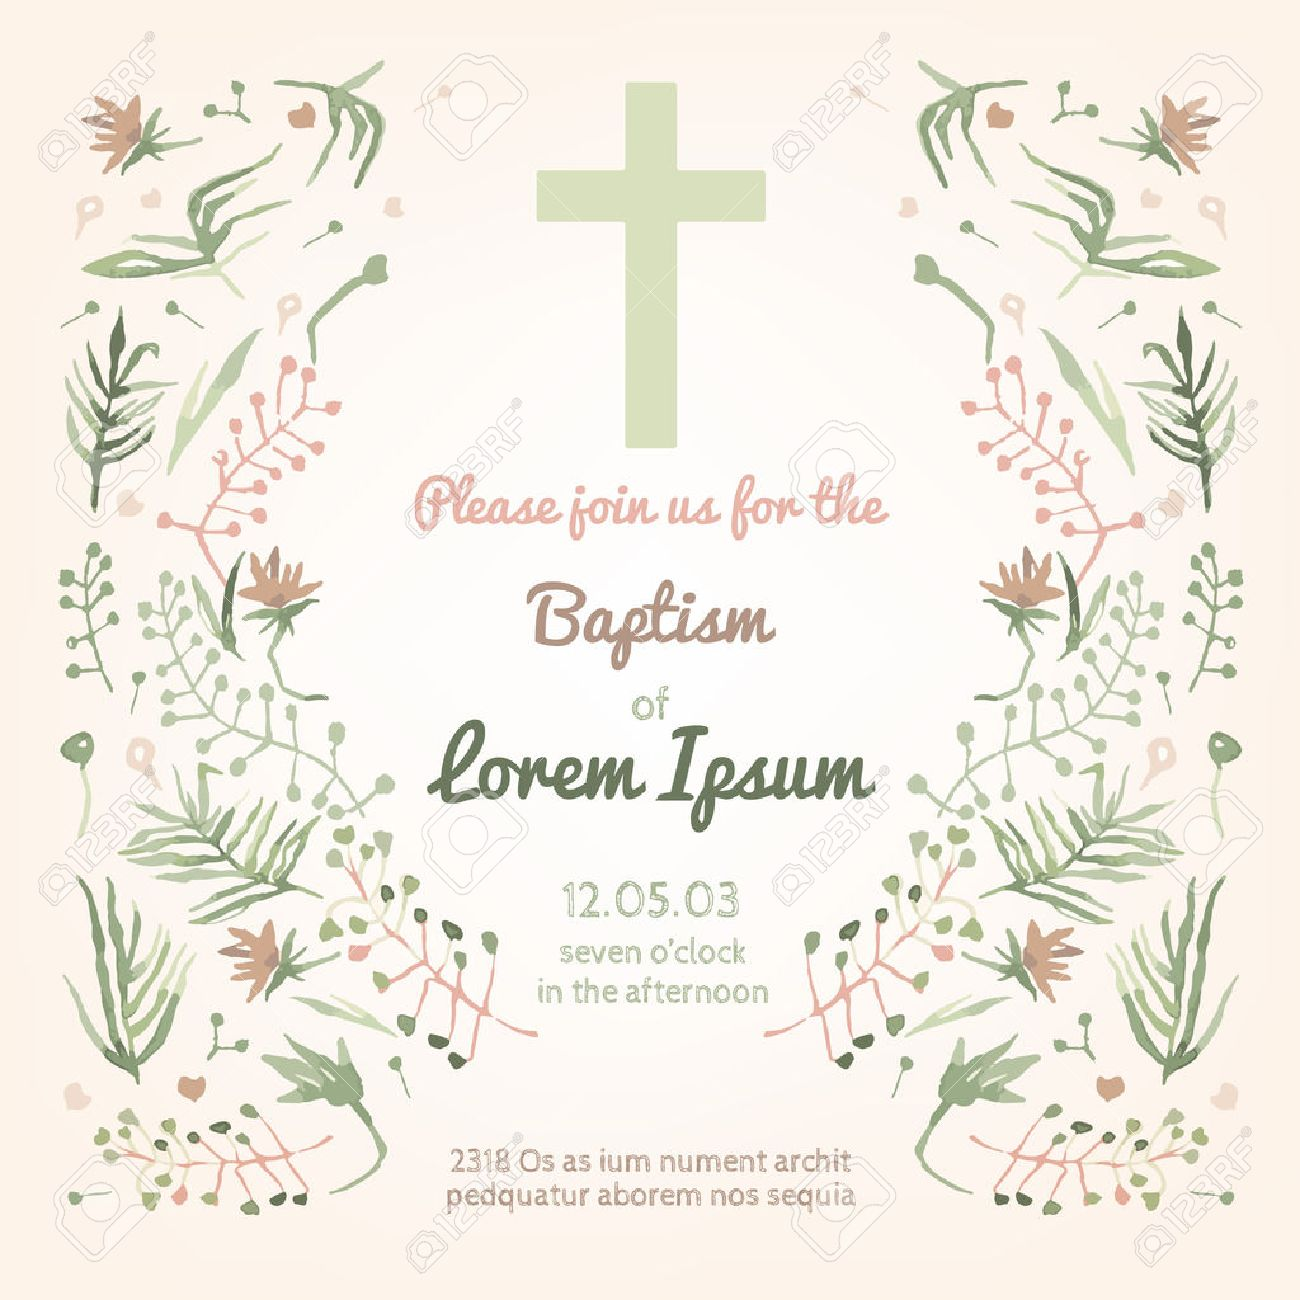 Beautiful Baptism Invitation Card With Floral Hand Drawn Watercolor  Elements. Cute And Romantic Vintage Style